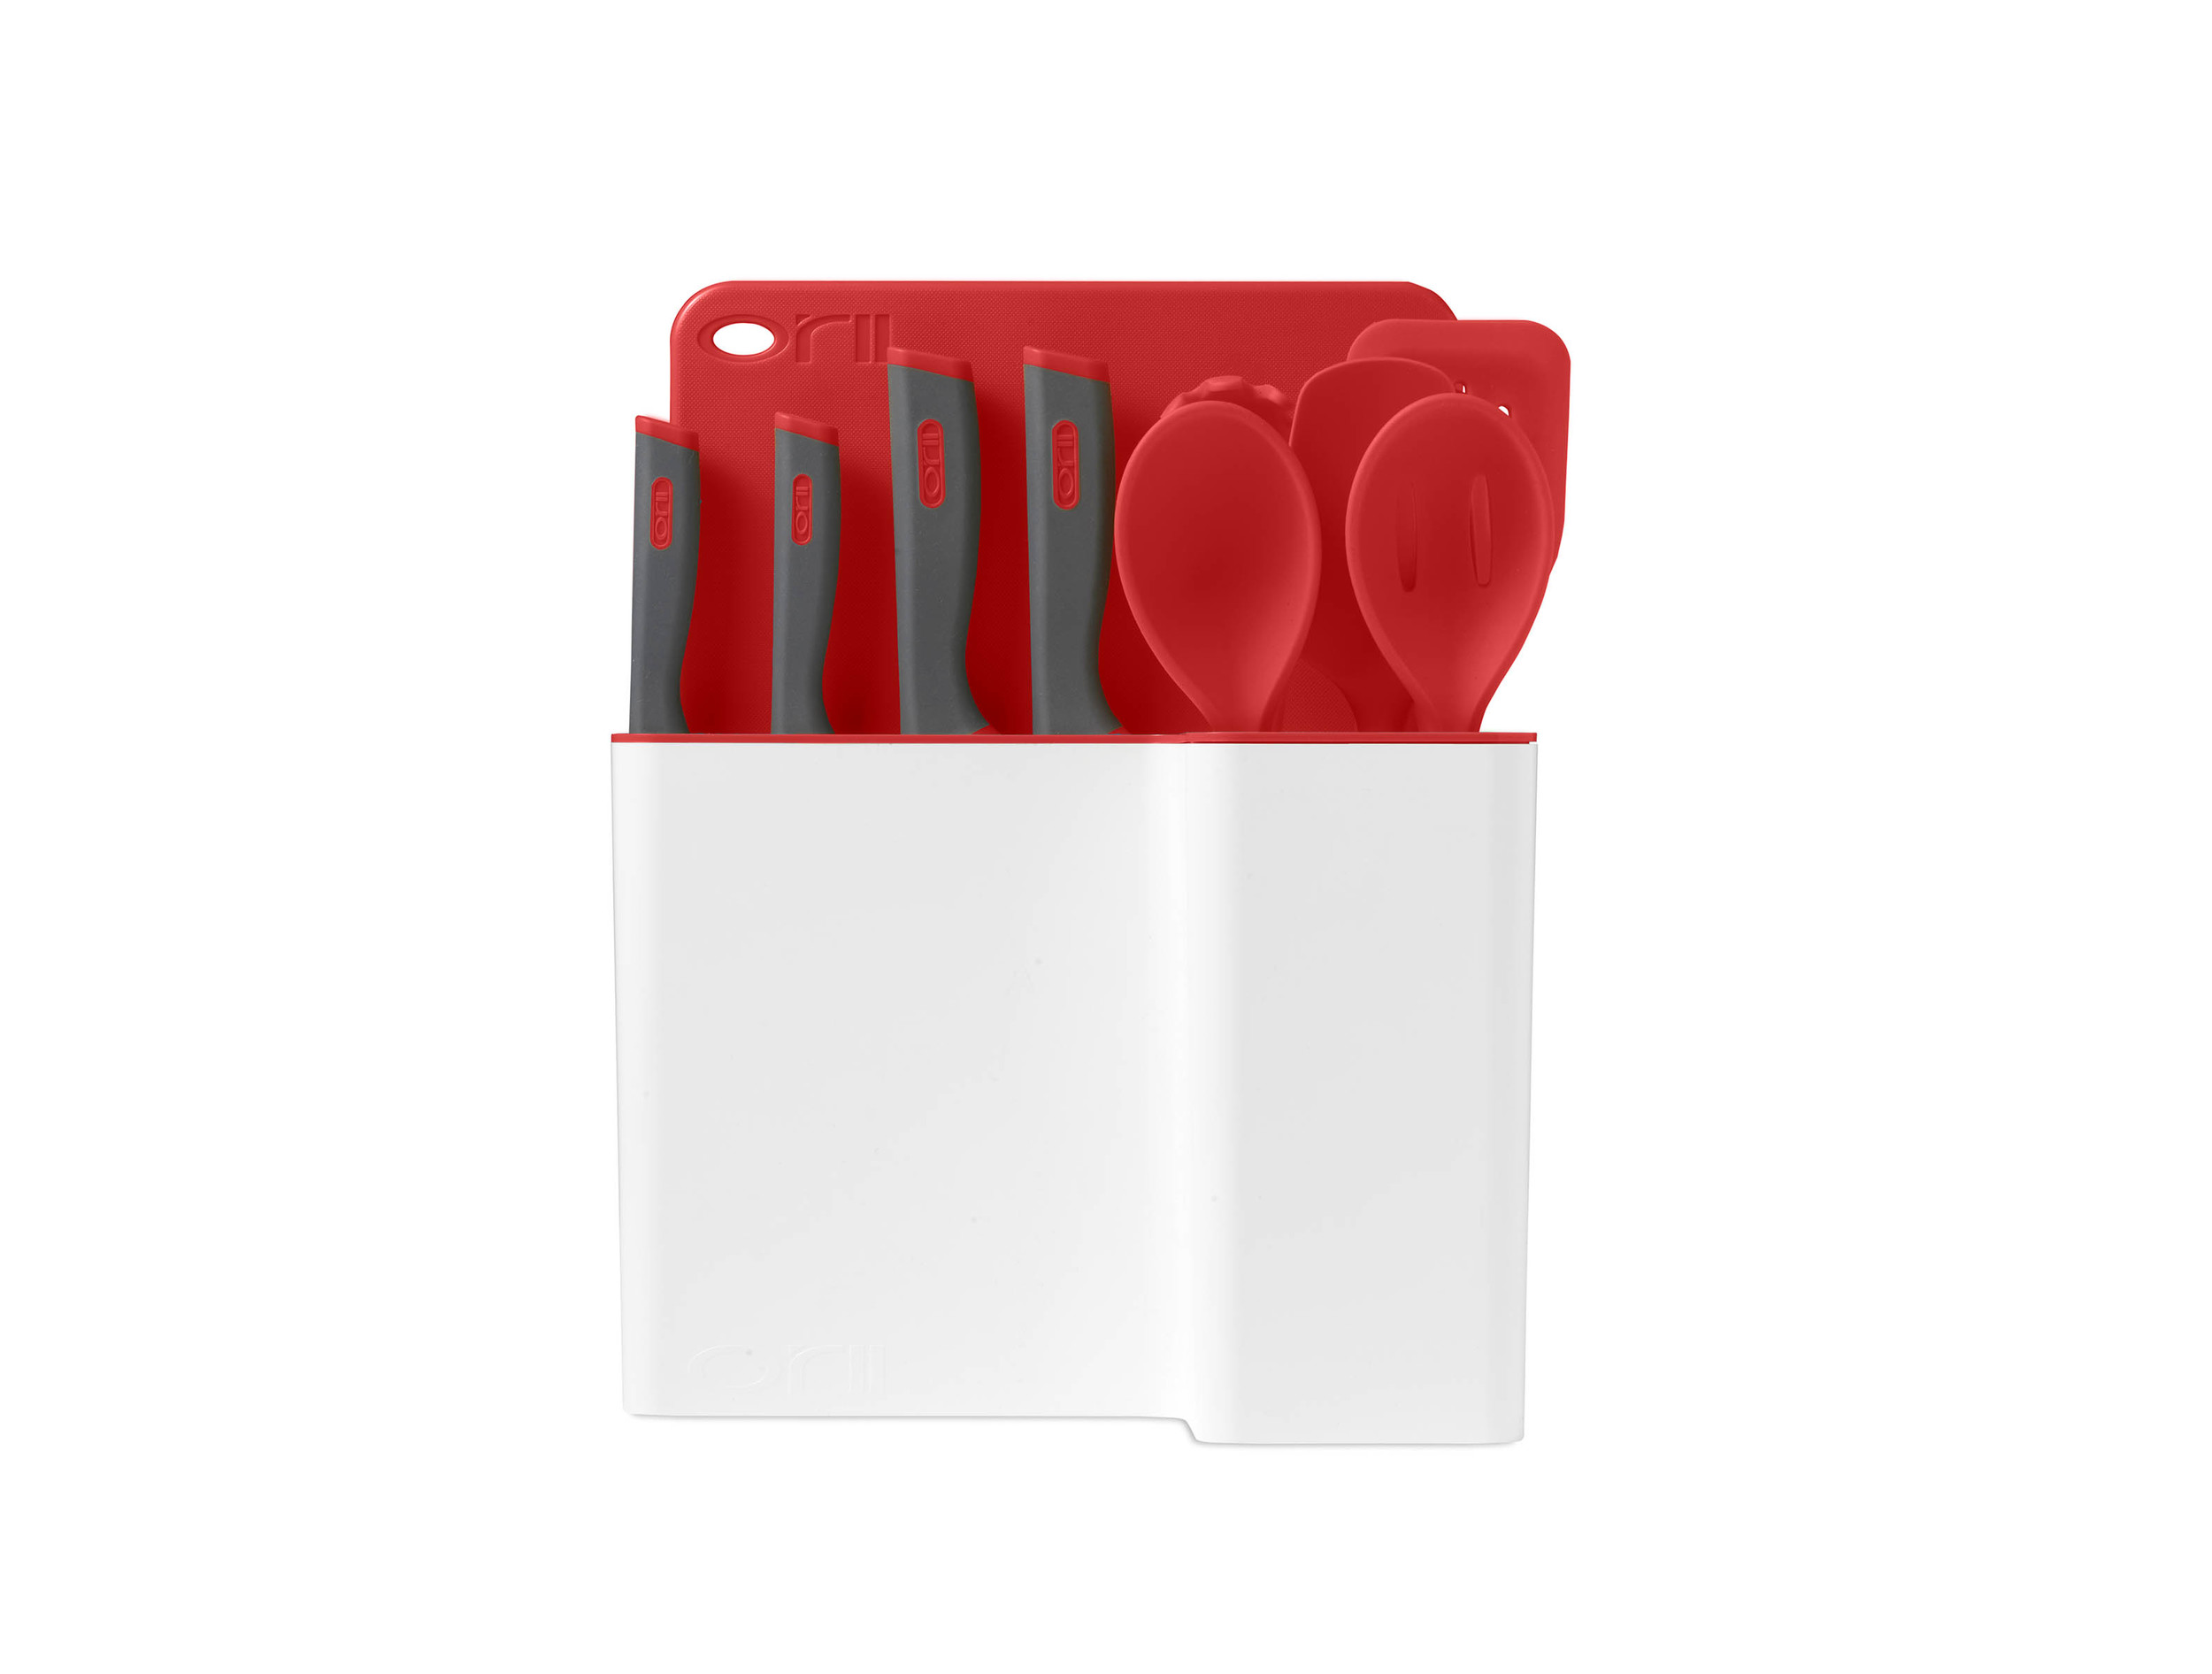 Orii 12PC MONO KITCHEN ORGANIZATION SET - RUBY RED